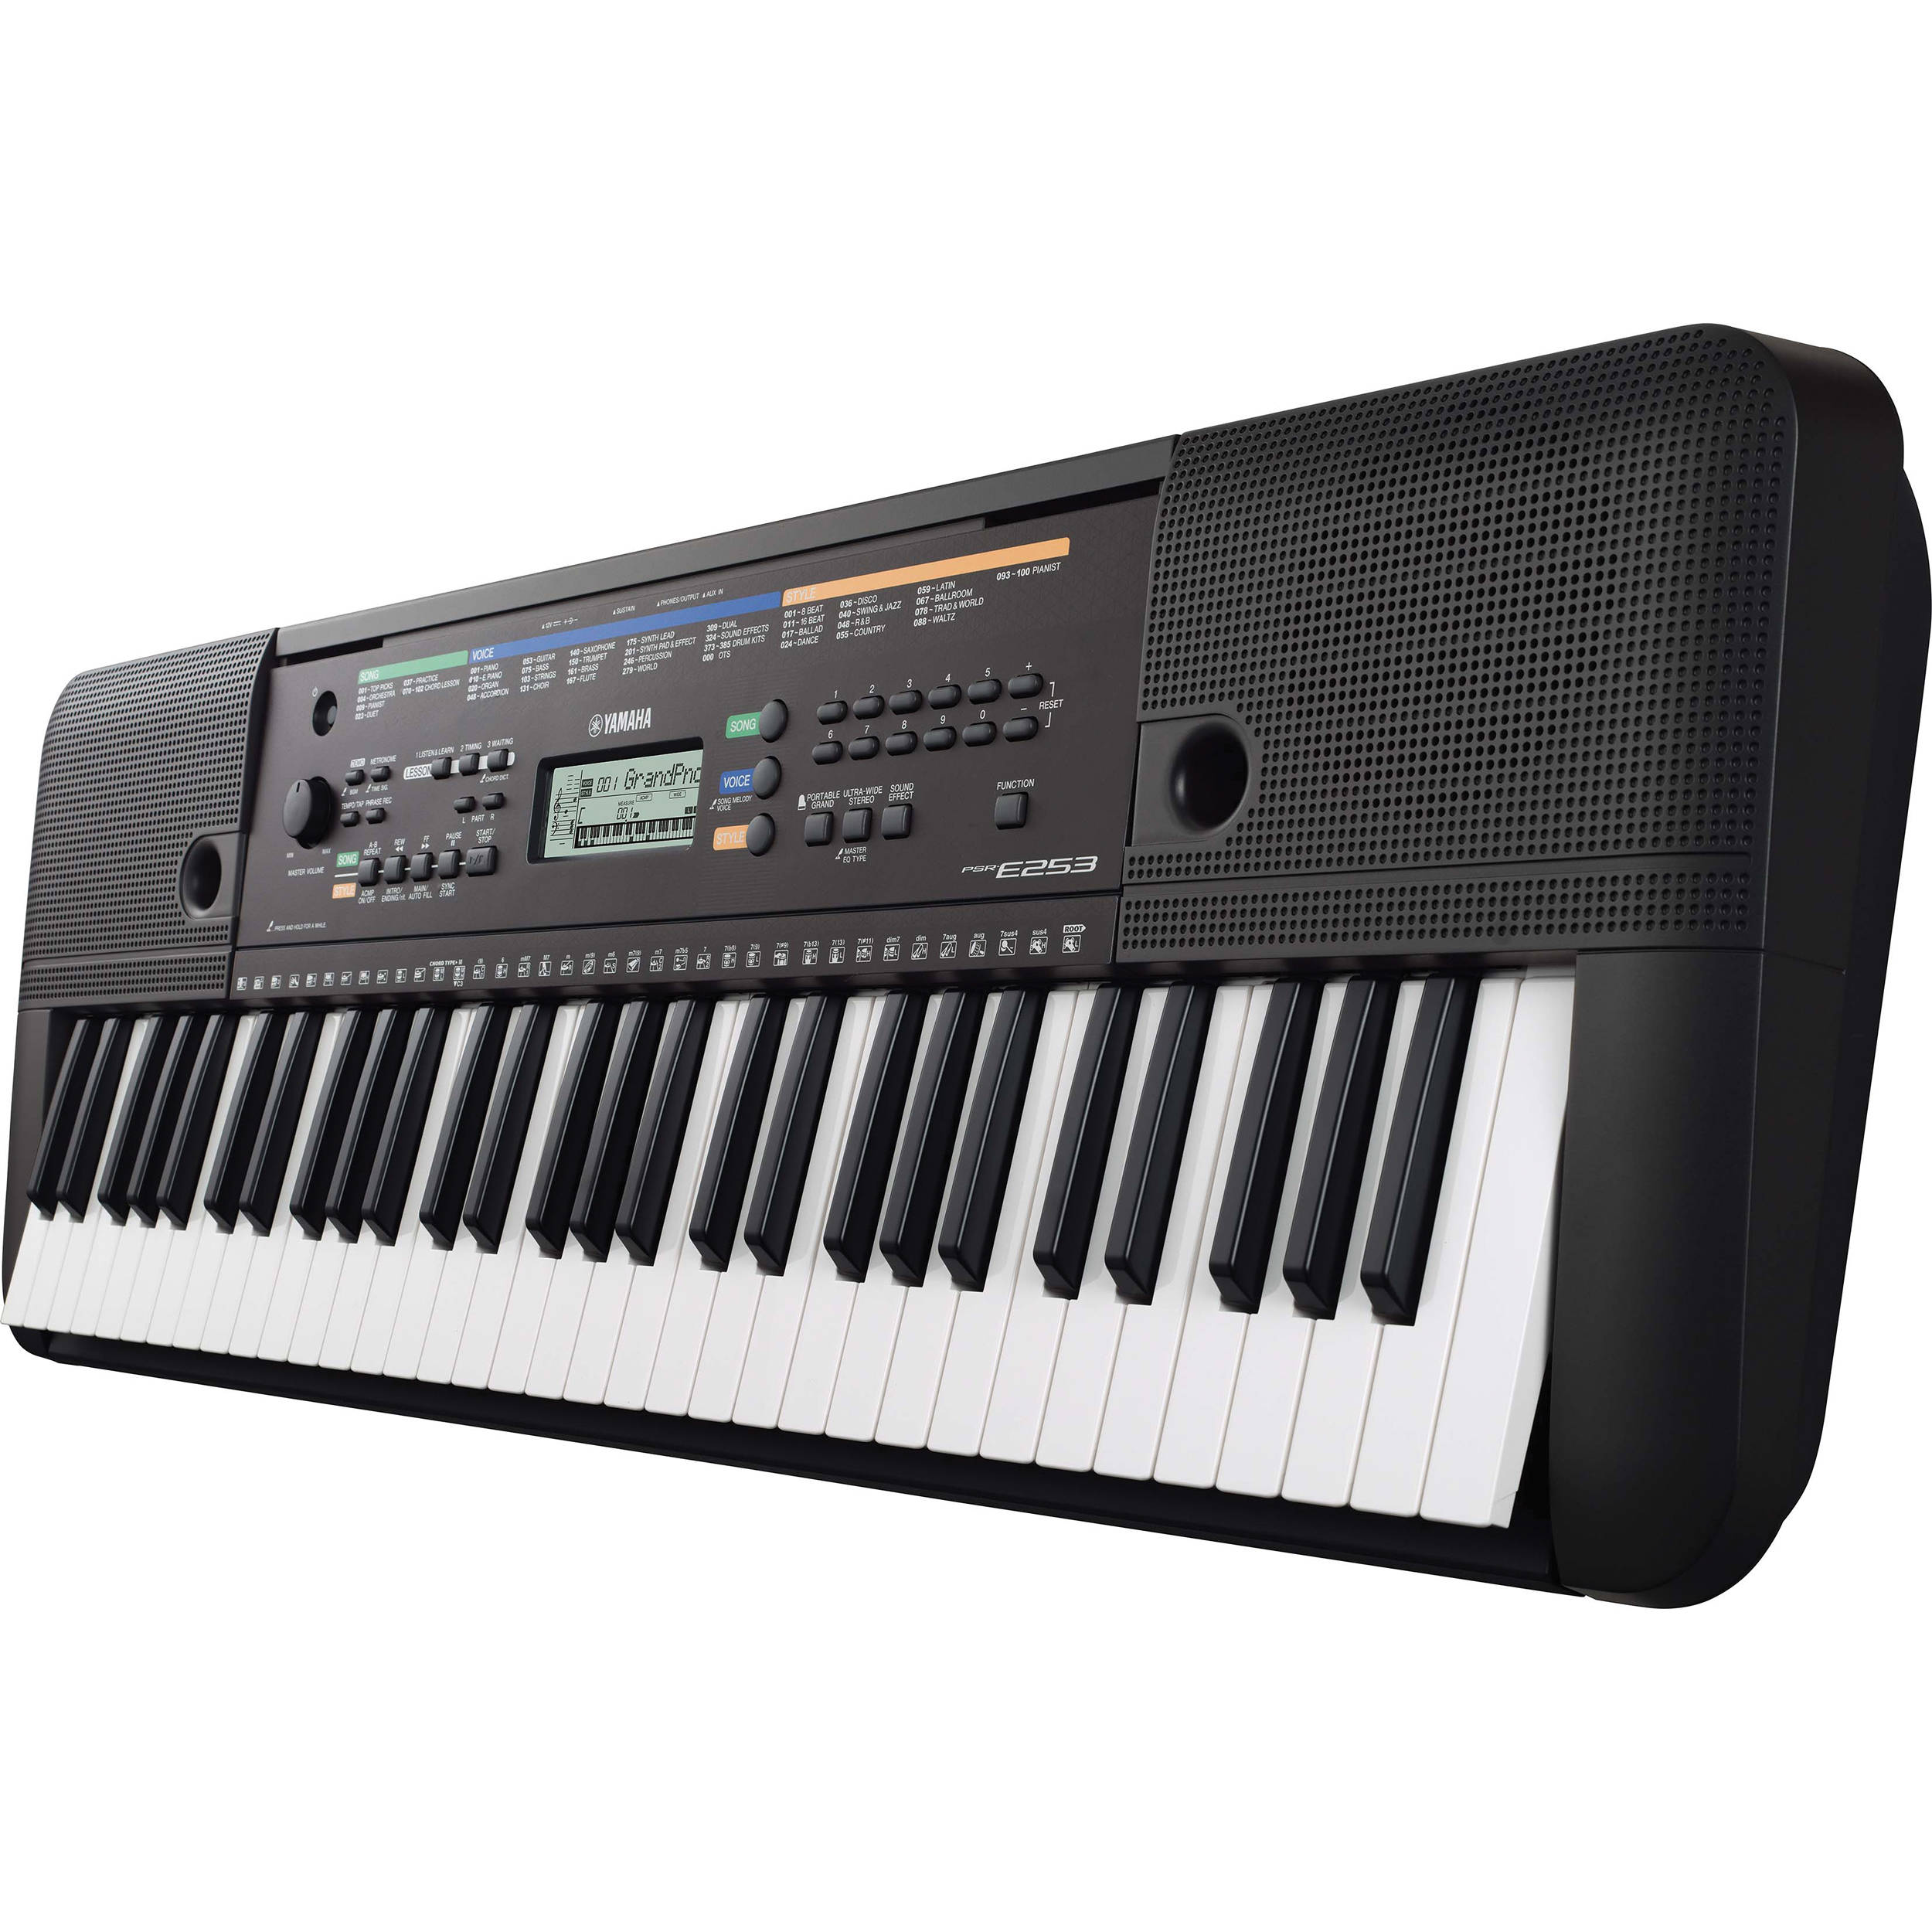 Yamaha psr e253 portable keyboard no power adapter psre253 for Yamaha professional keyboard price